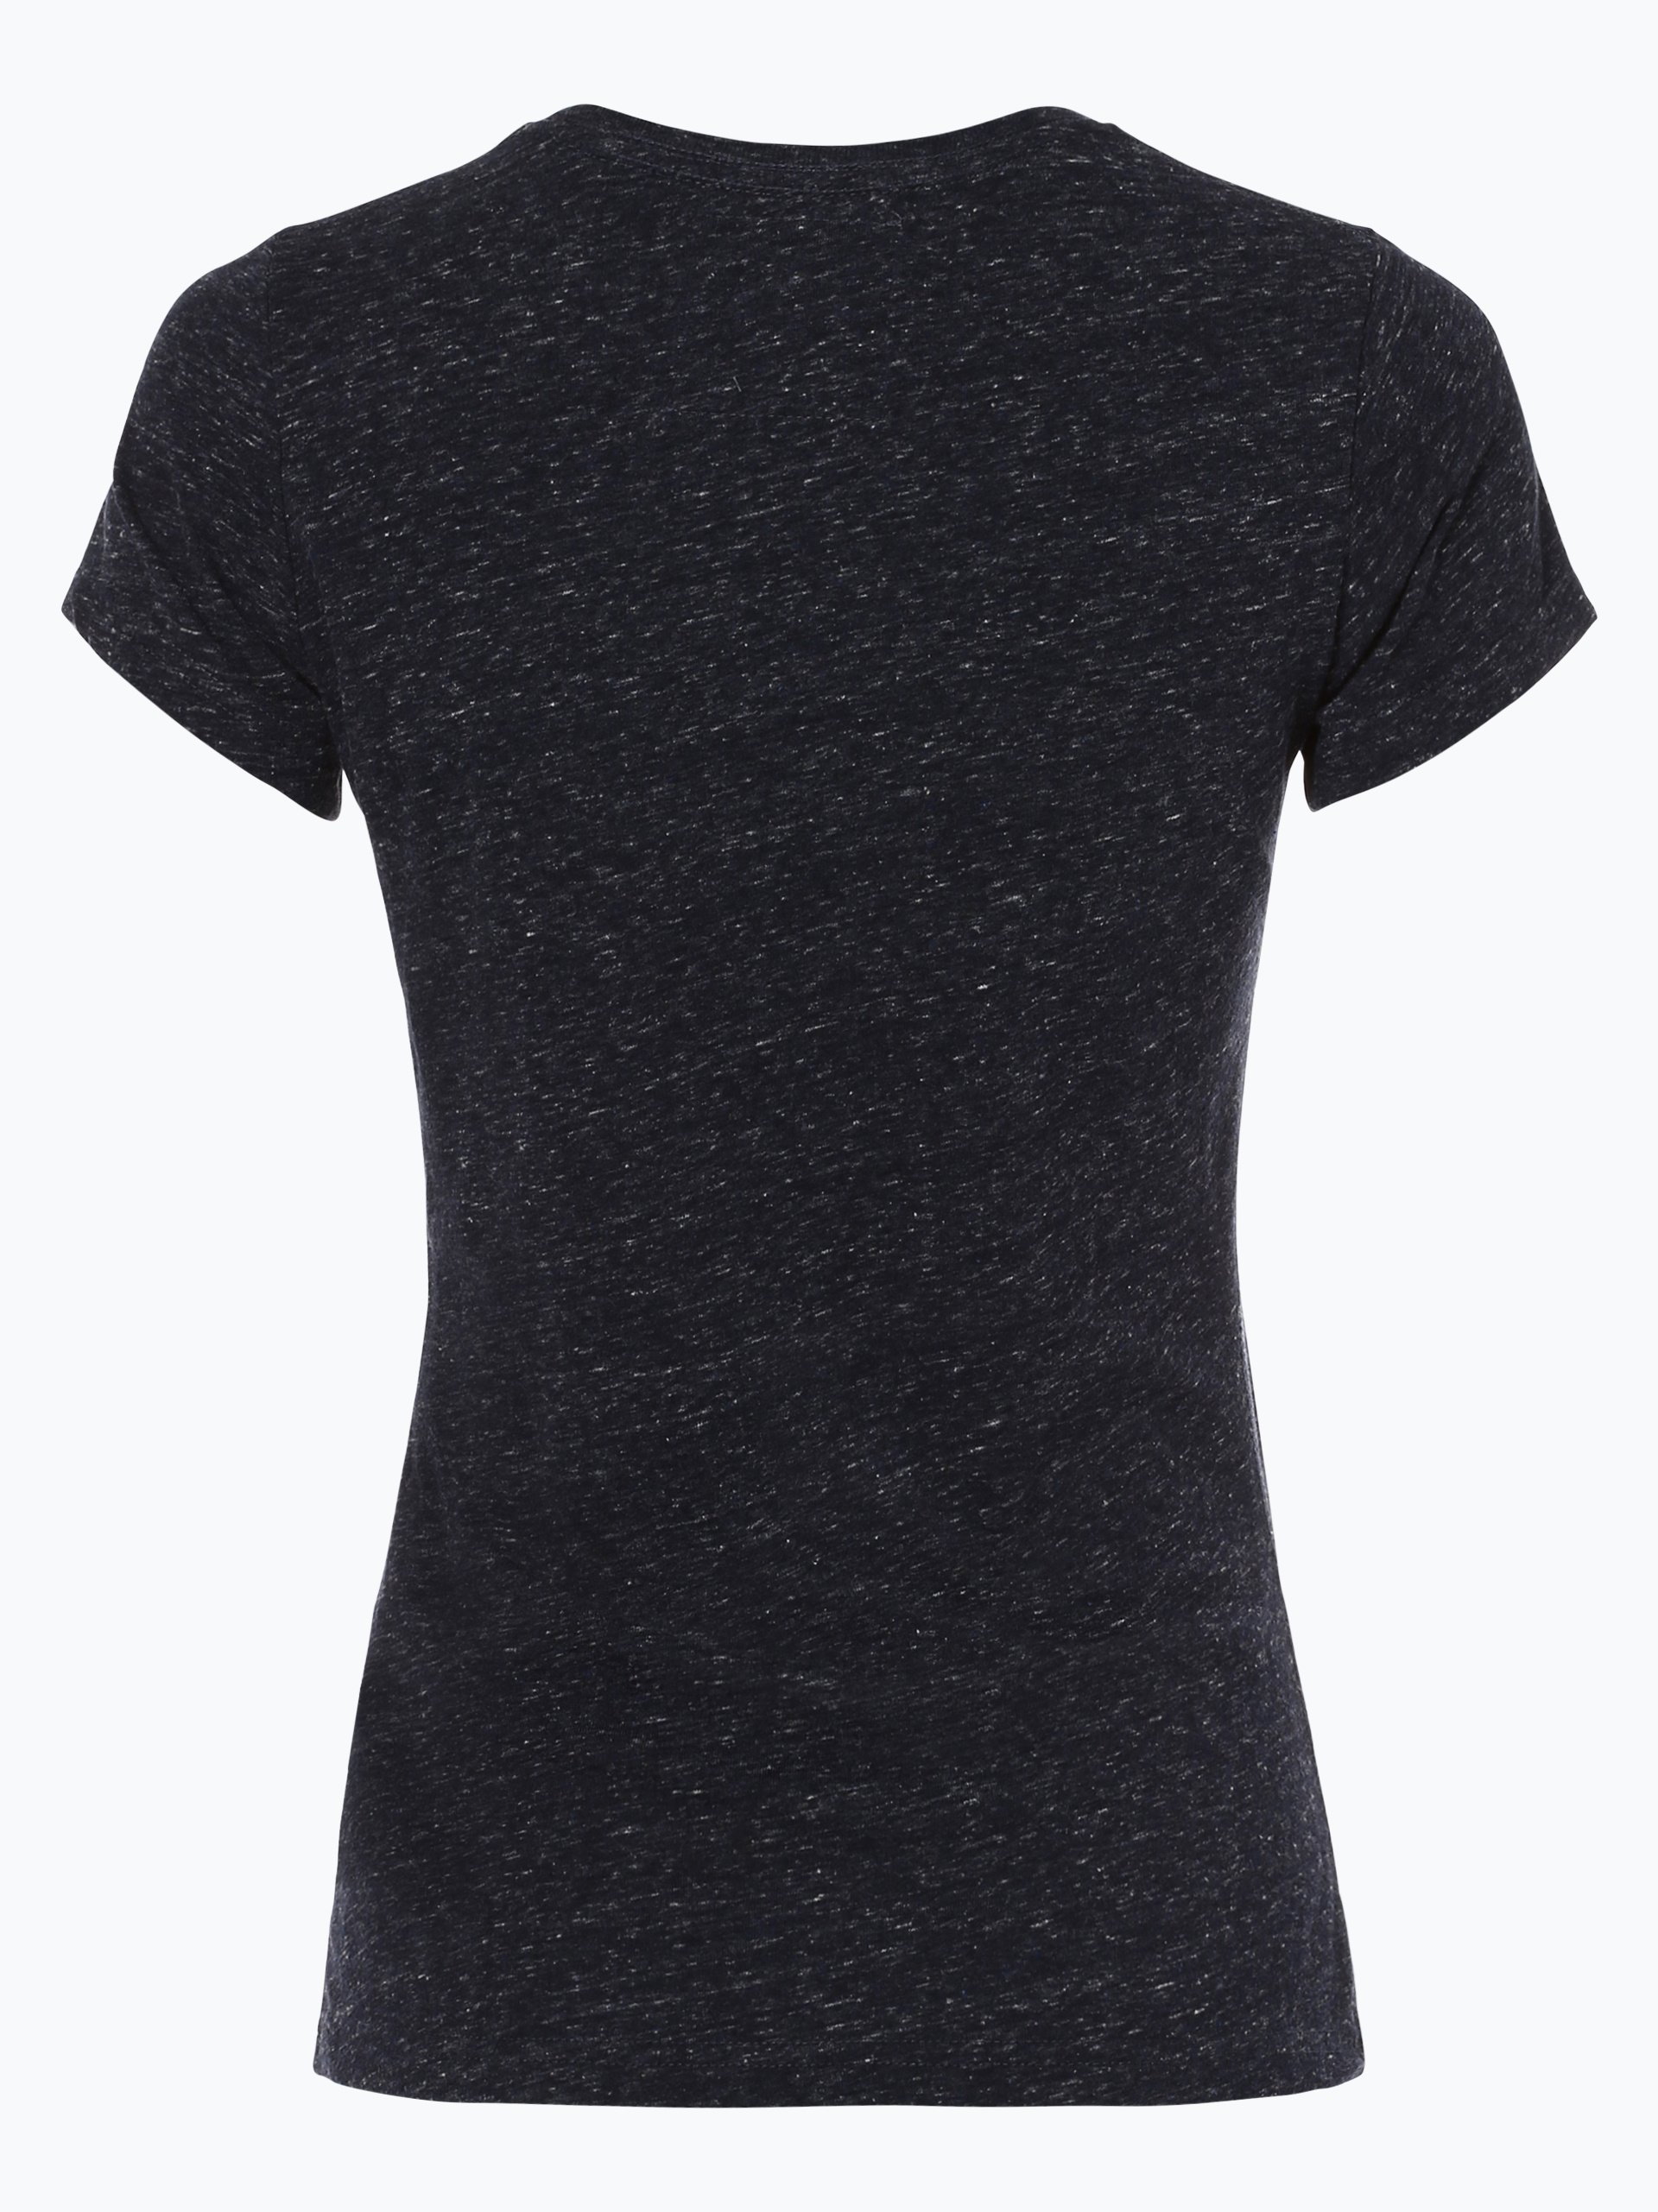 Superdry T-shirt damski